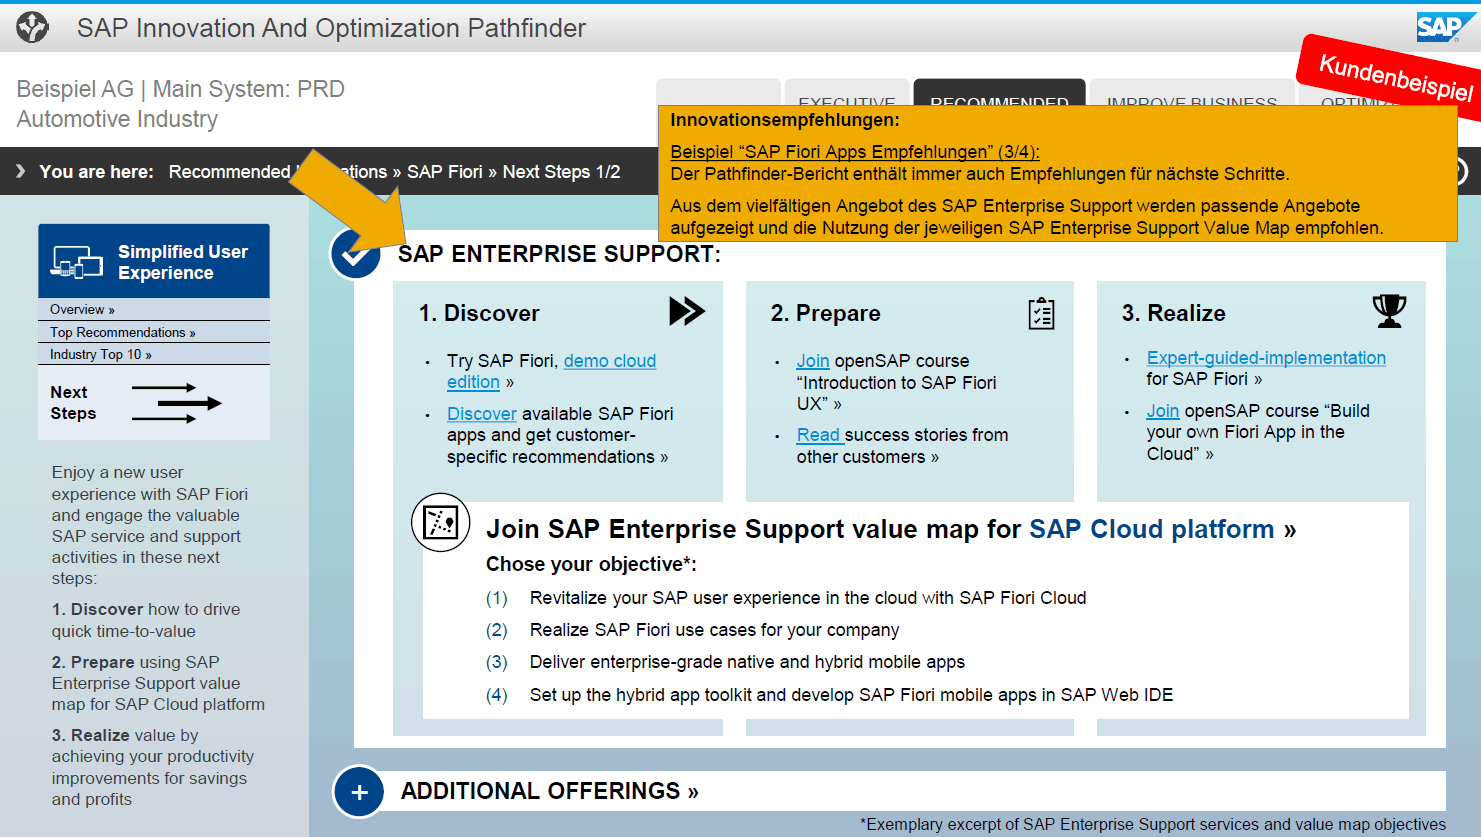 Blog_Screen_SAP Pathfinder_Innovationen 3